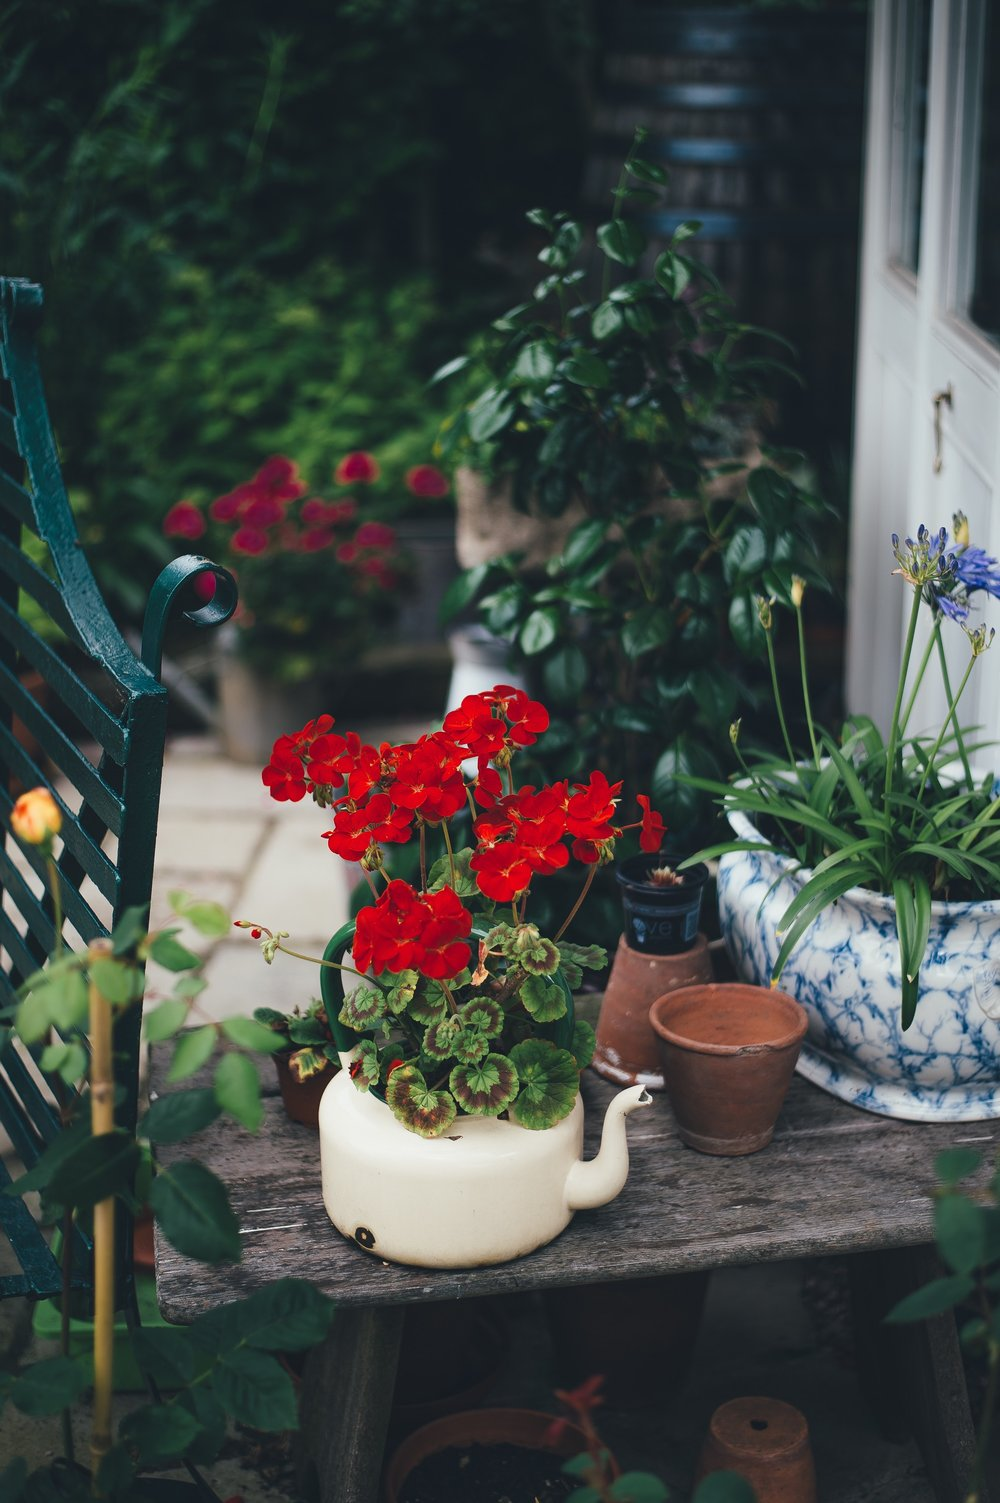 Plants thriving even in small places near you can bring happiness. Photo by  Annie Spratt  on  Unsplash